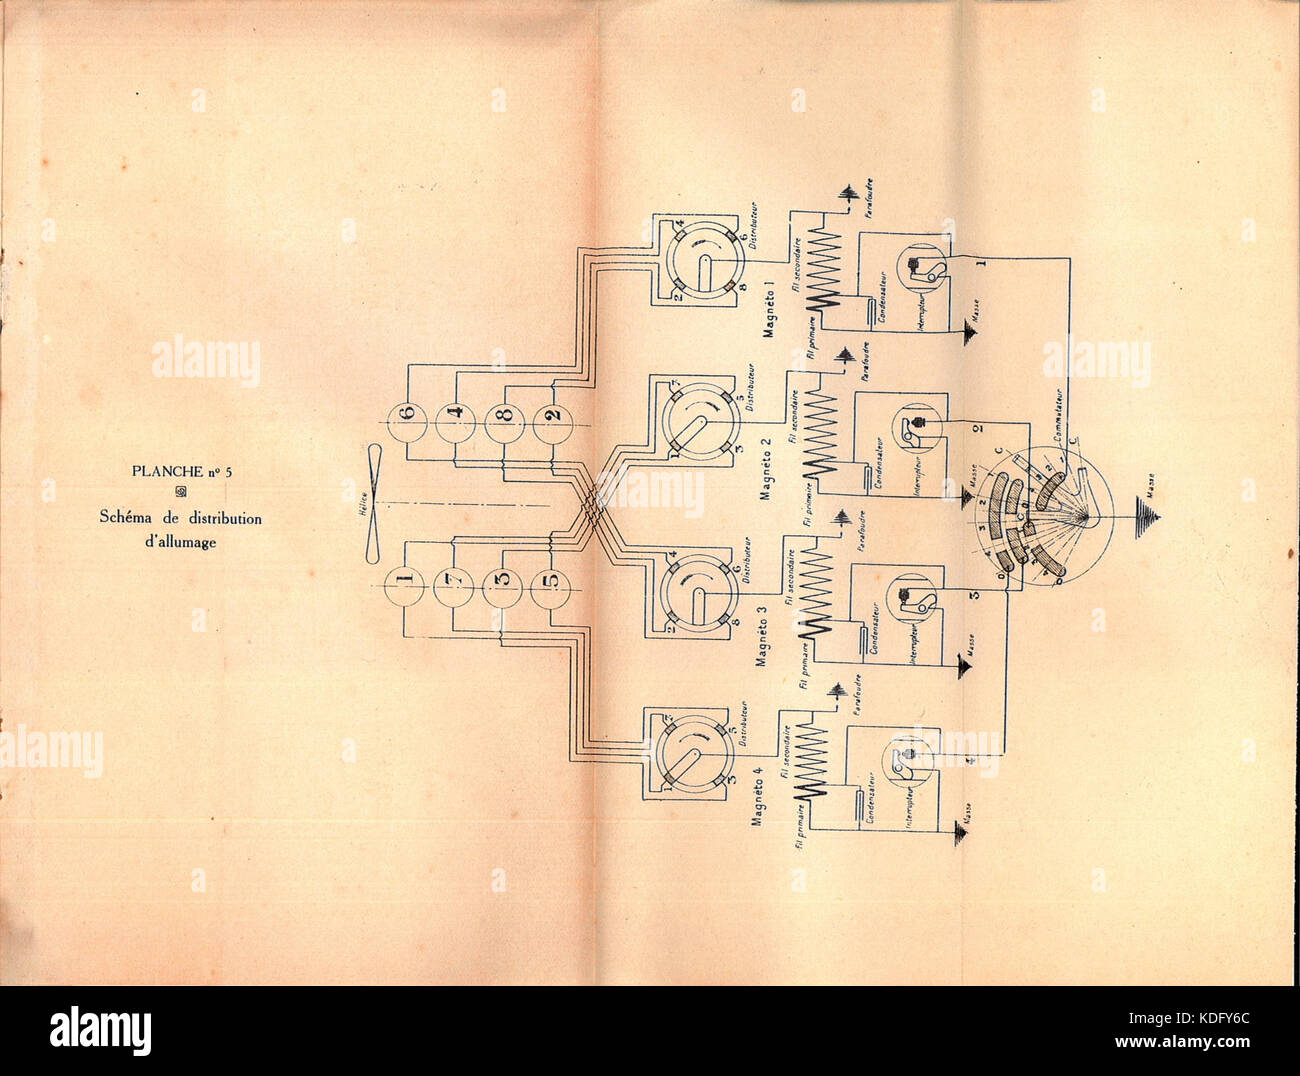 Wiring Diagram Stock Photos Images Alamy Multiple Outlet Ceiling Rose Free Download Diagrams Renault 190hp Drawing5 Image